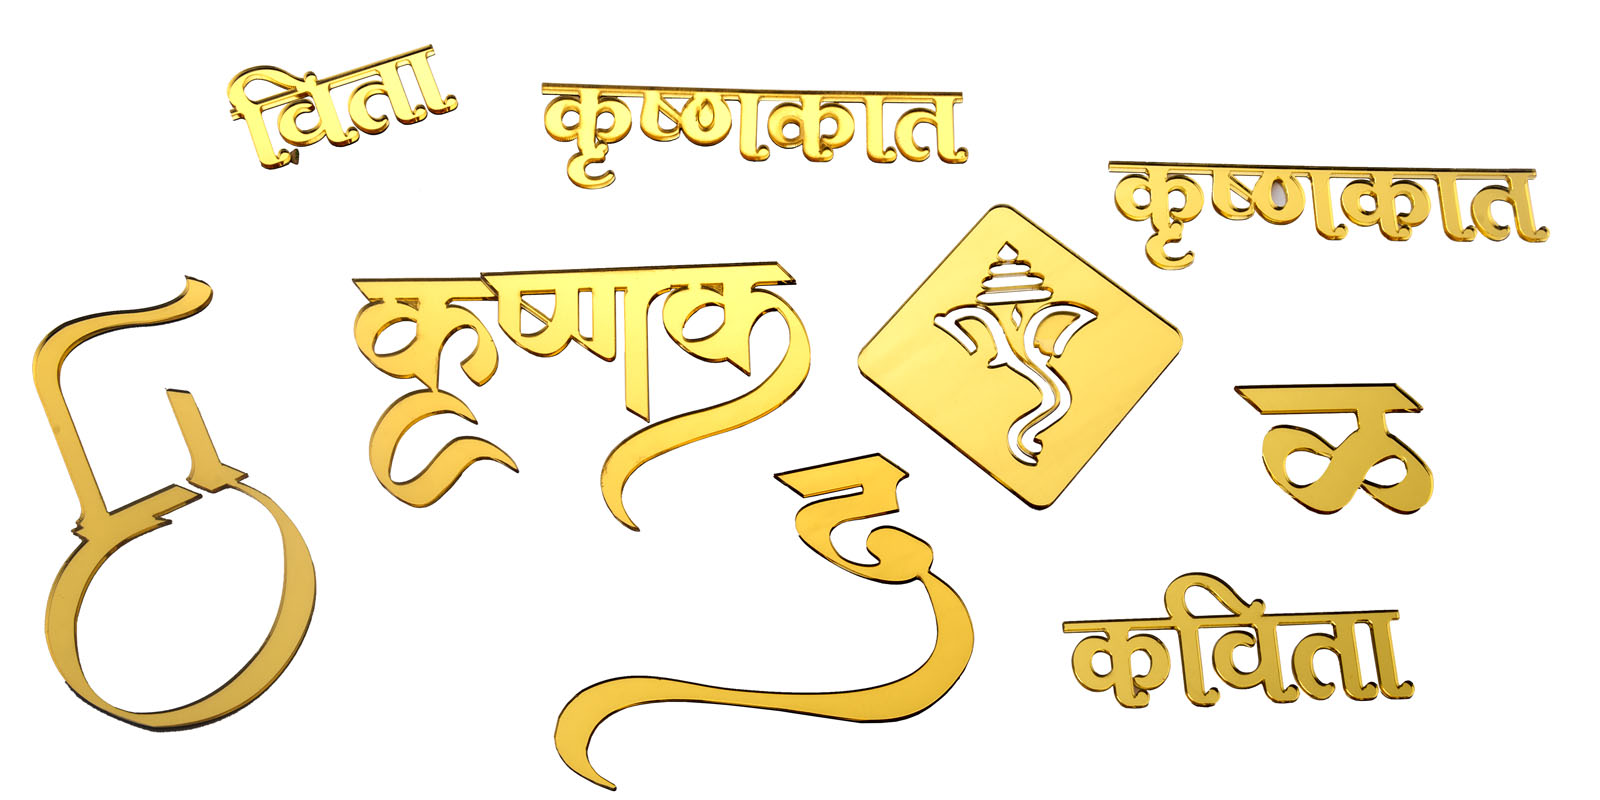 Marathi letters and ganpati logo laser cut out of gold acrylic having a high reflective metallic finish